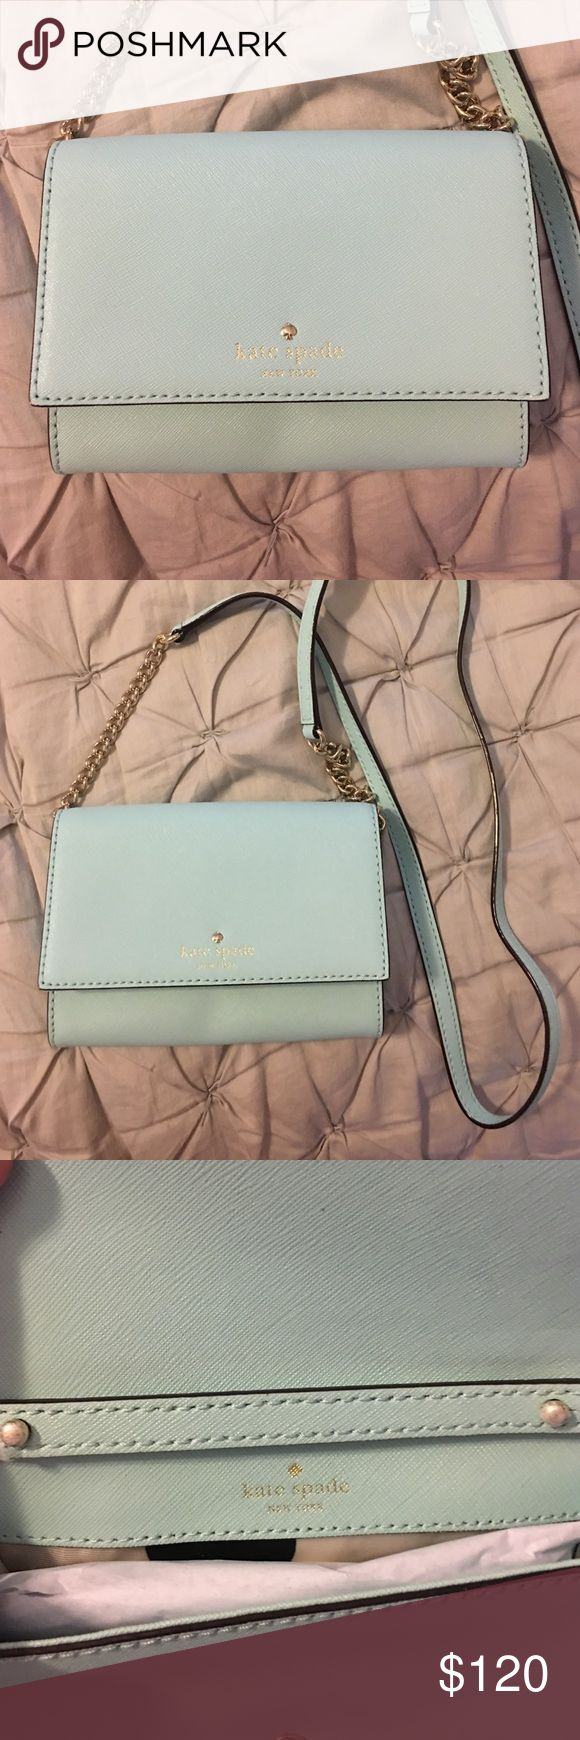 Kate Spade Crossbody. Beautiful Robins Eggs color! Kate Spade Crossbody. Brand new. Beautiful Robins Egg color. Simple yet chic and adds a feminine touch to any outfit! Kate Spade Bags Crossbody Bags